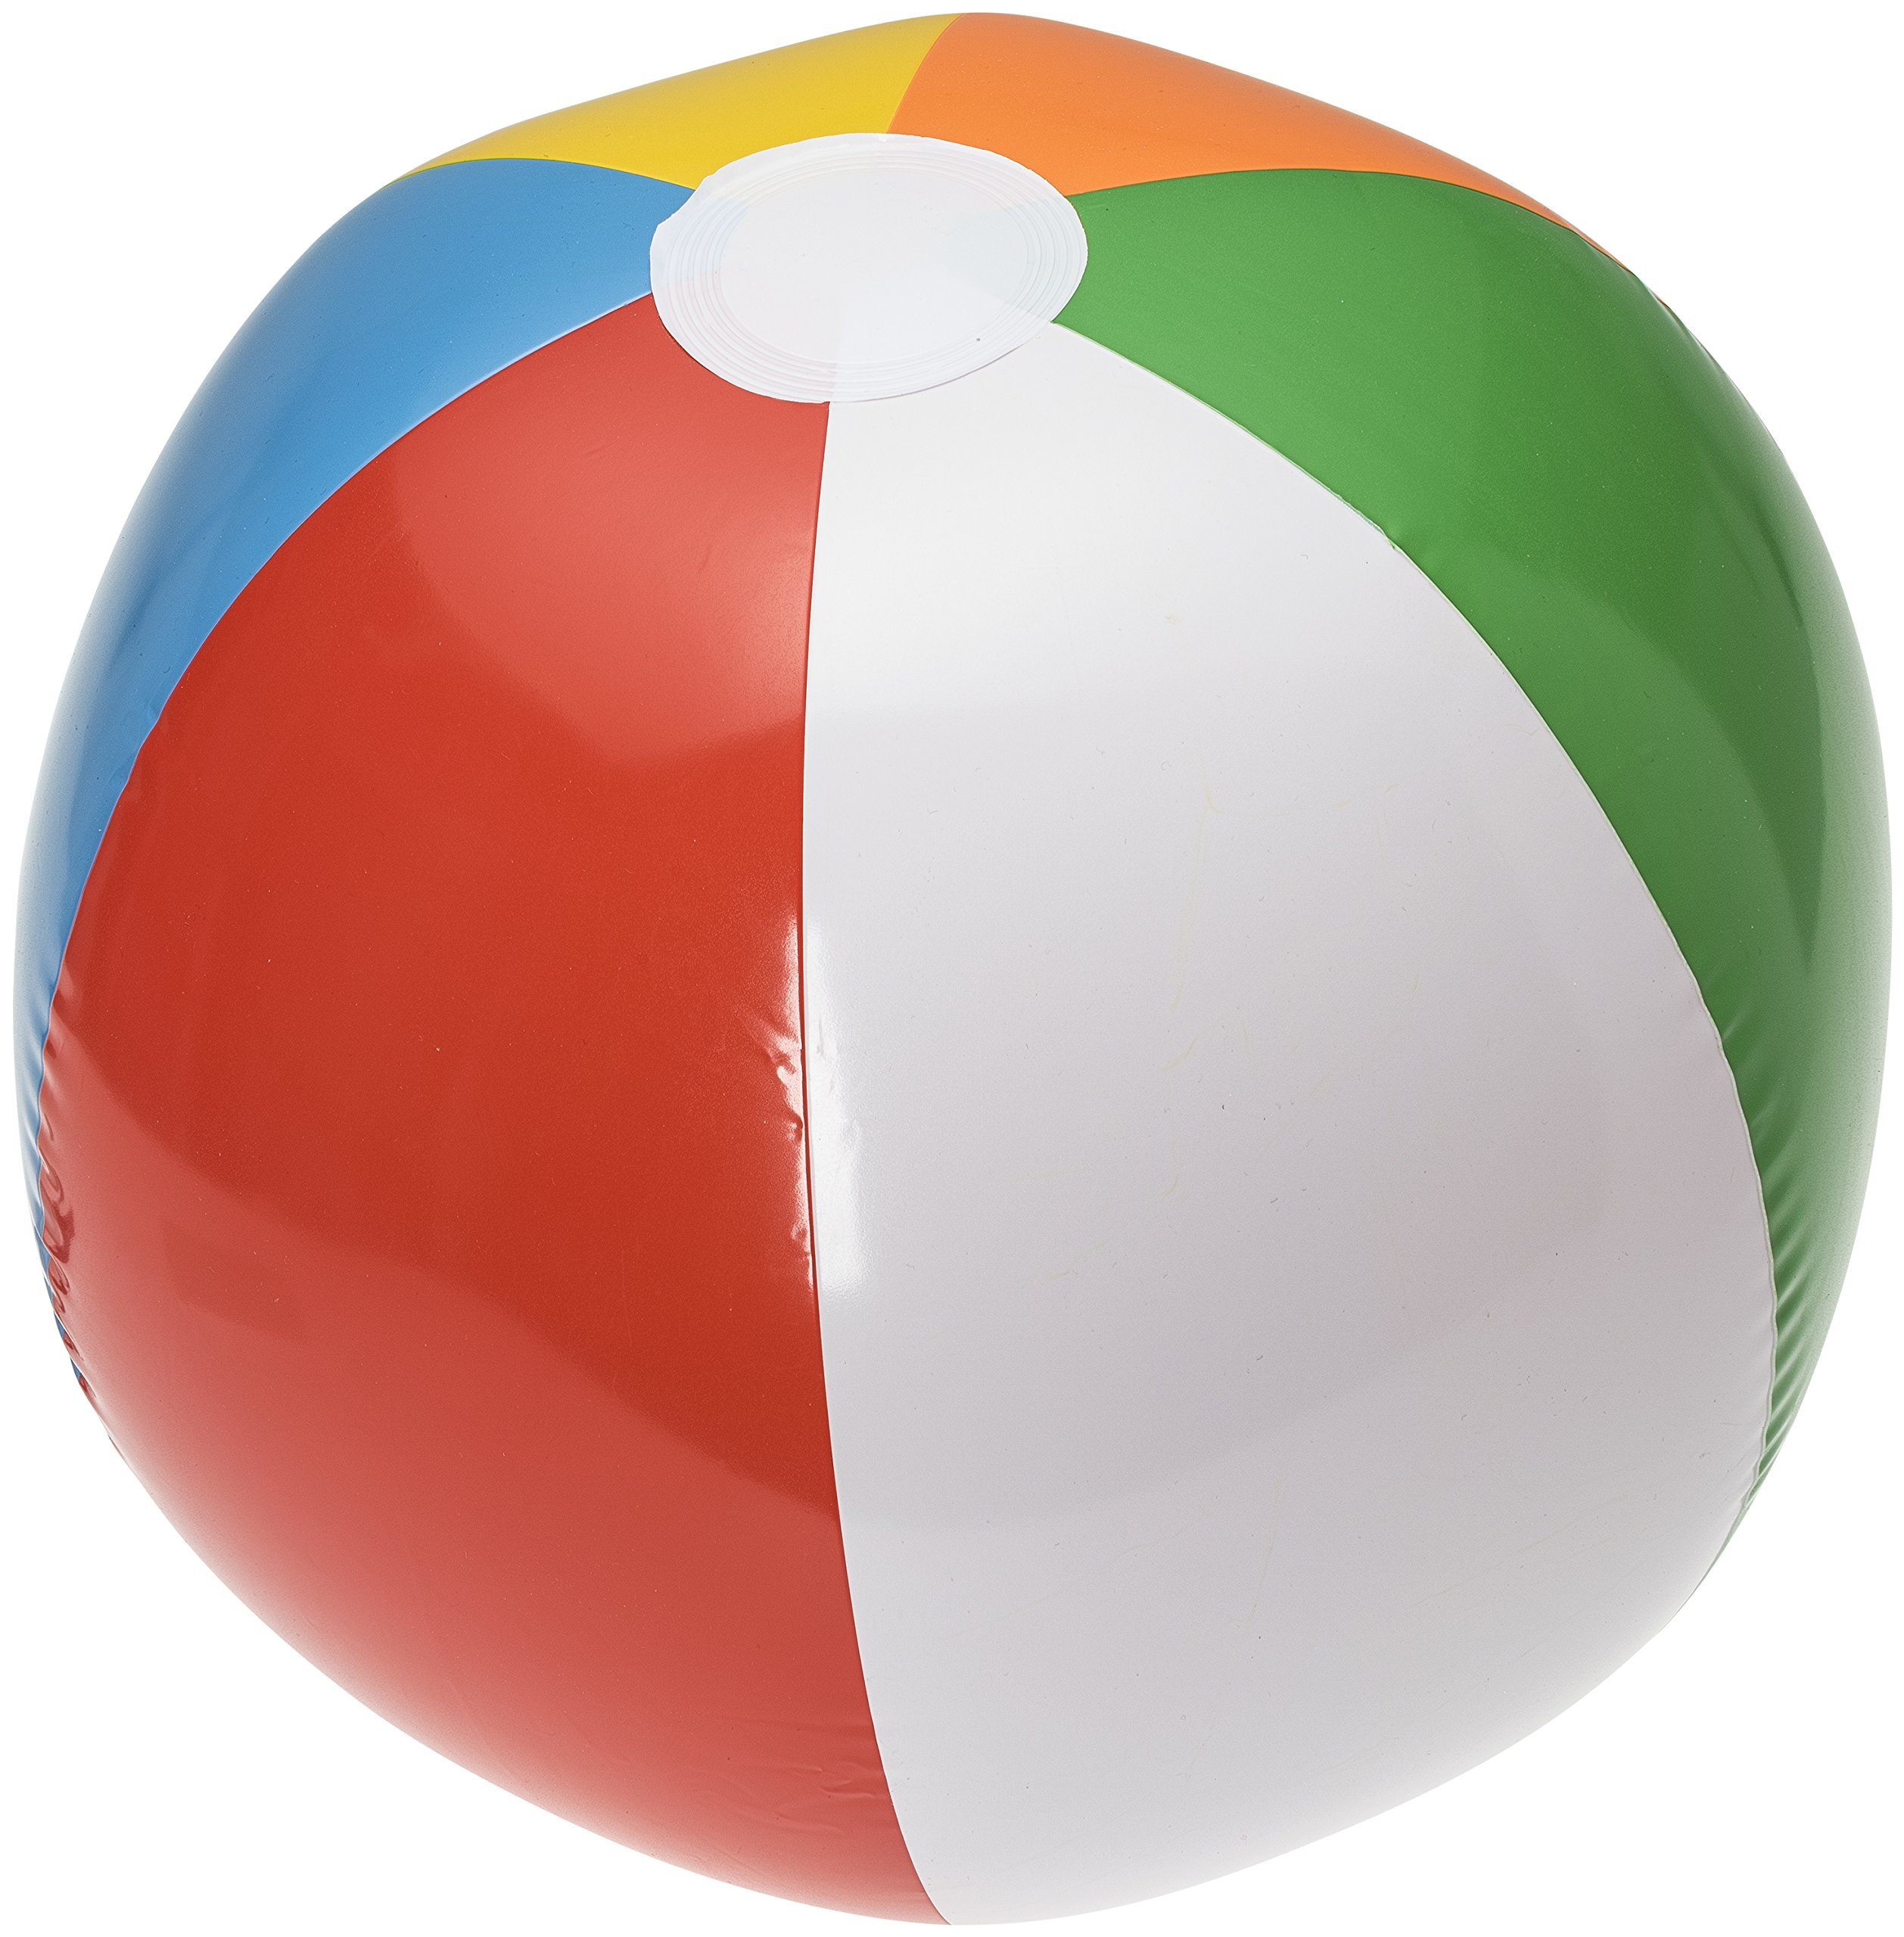 NJ Novelty 20'' Large Inflatable Beach Balls 1 Dozen Rainbow Colored for Pool Party/Summer Water Fun and Birthday Parties